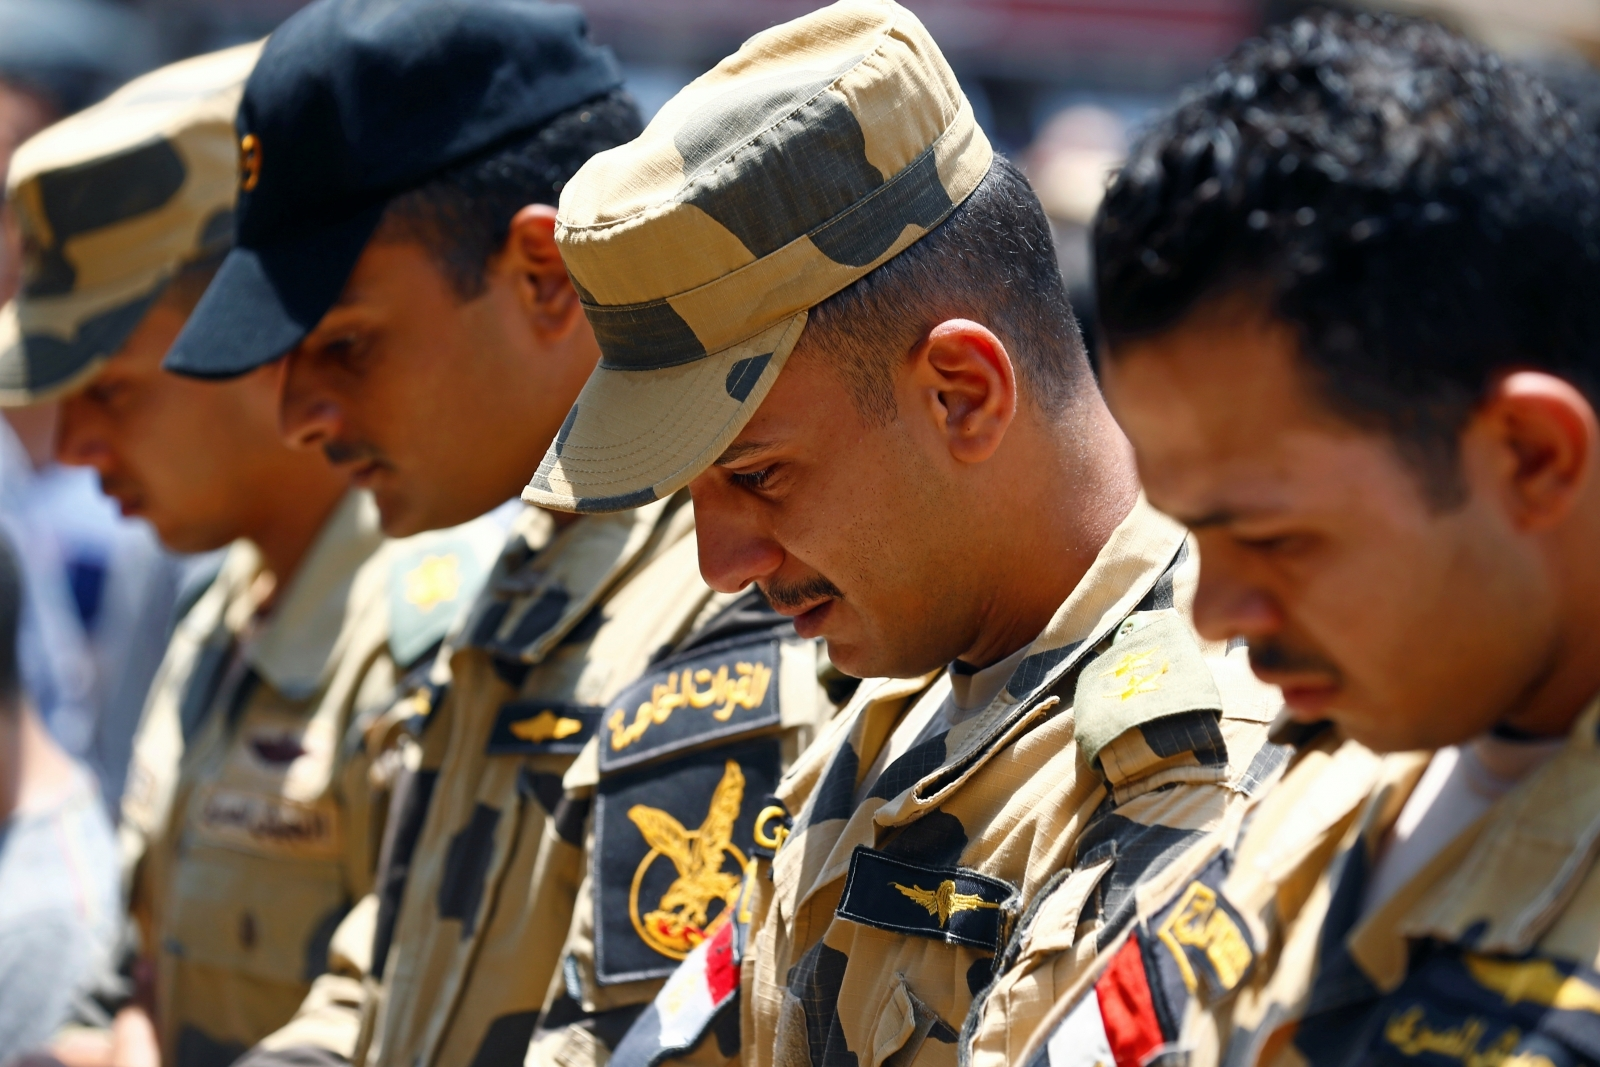 Egypt soldiers